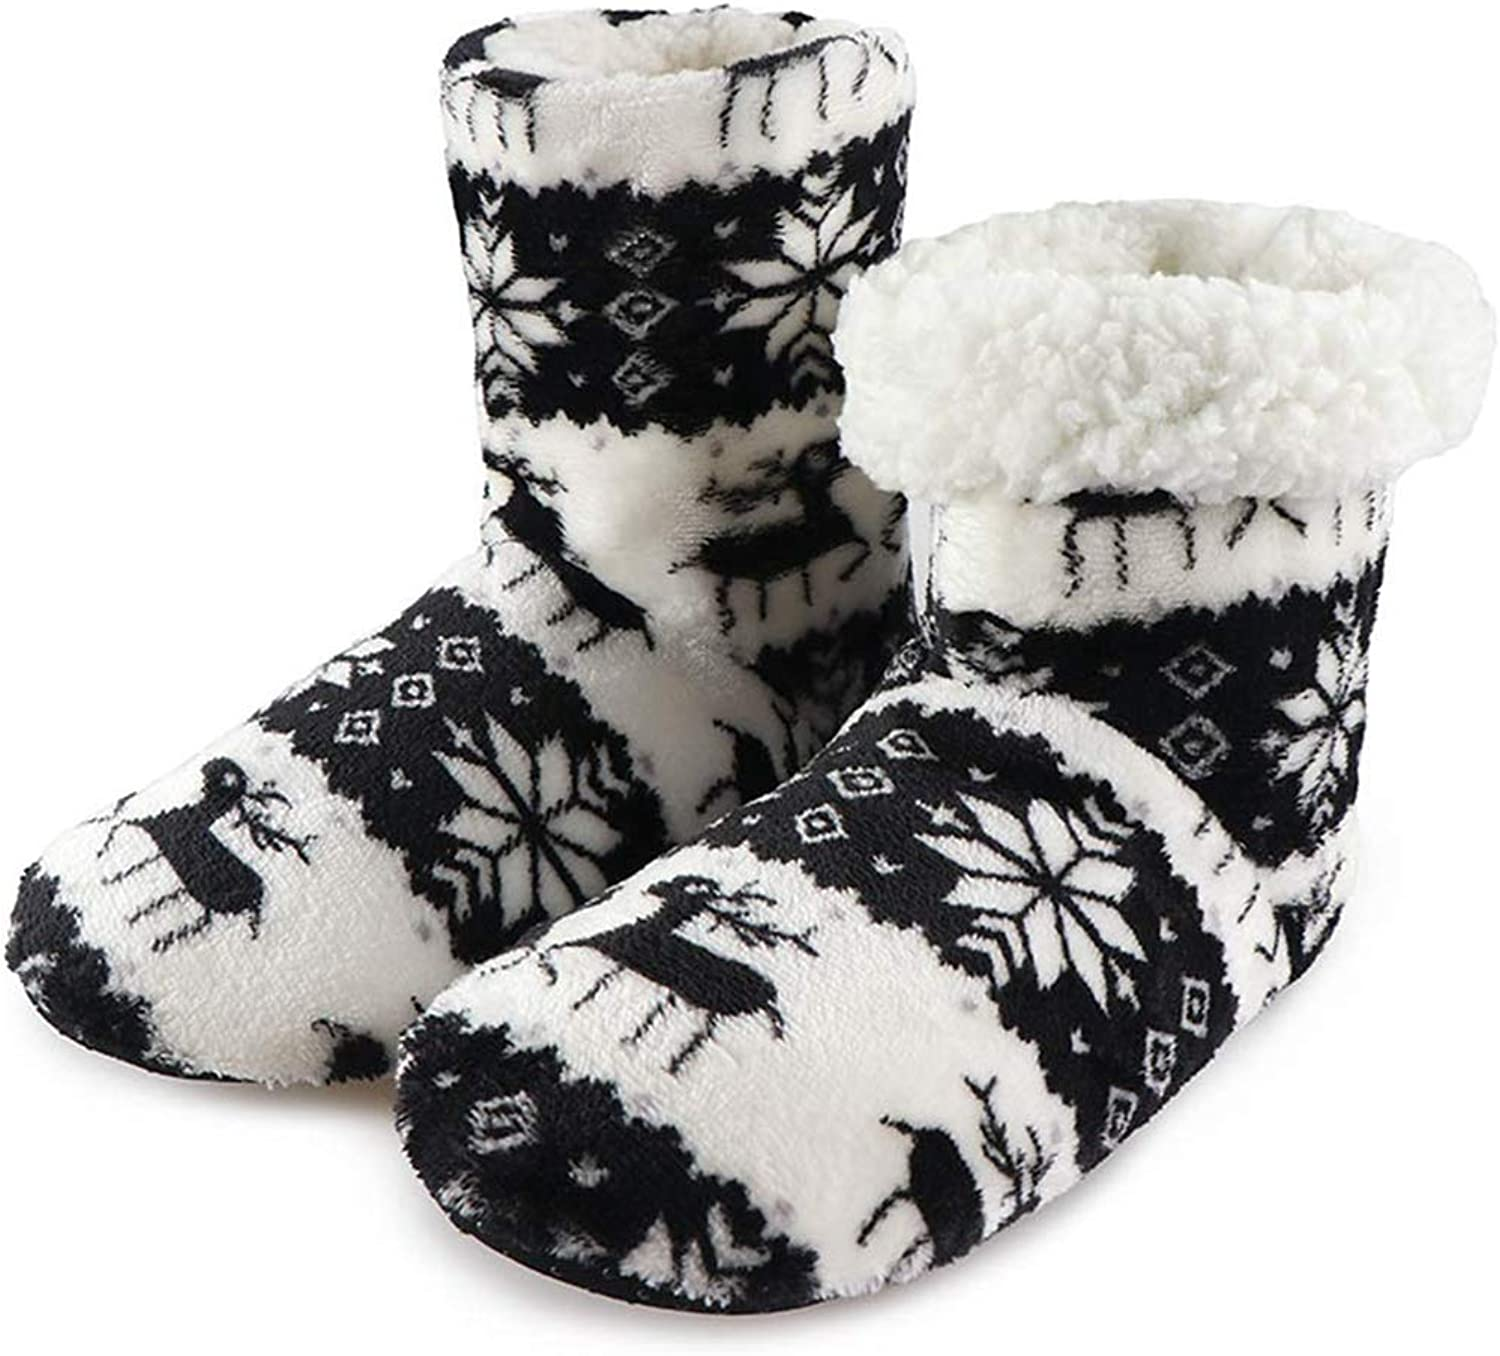 York Zhu Indoor Home Slippers Winer Super Soft Warm Cozy Fuzzy Lined Booties Slippers